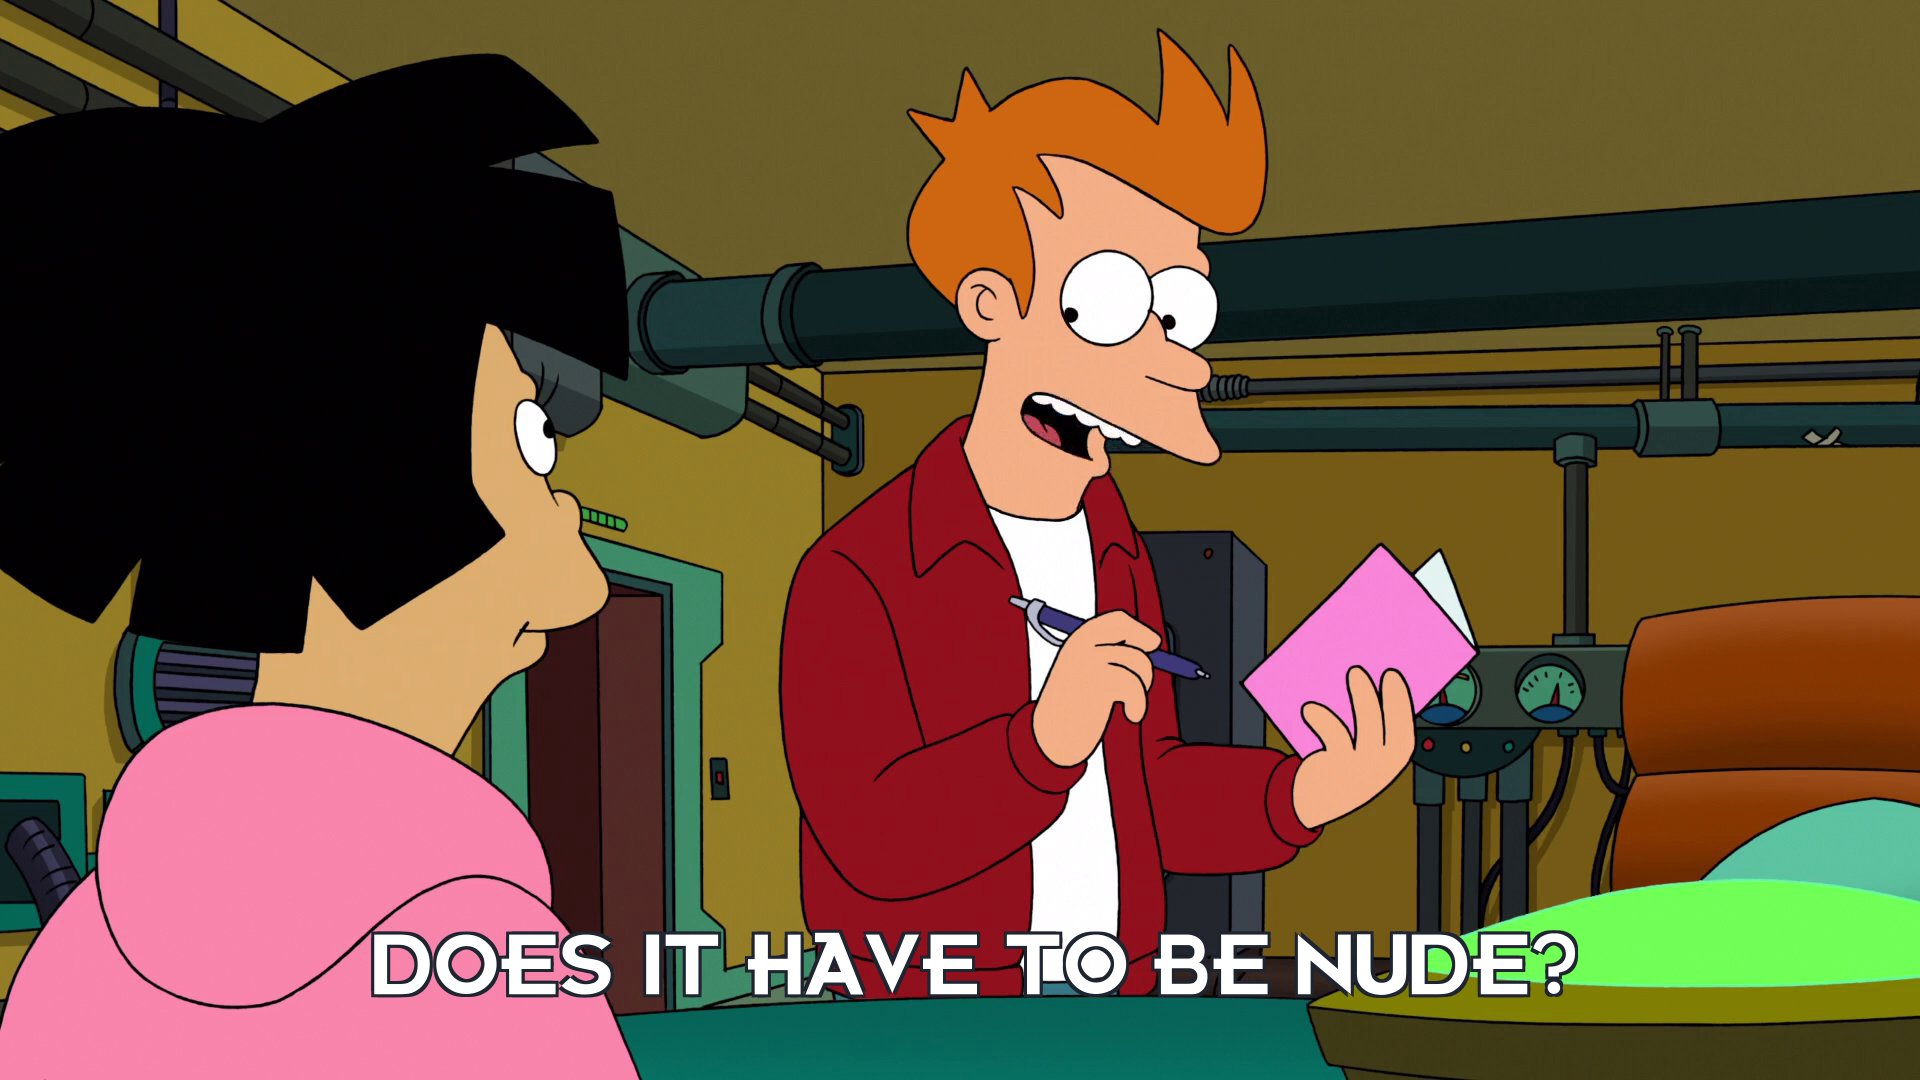 Philip J Fry: Does it have to be nude?